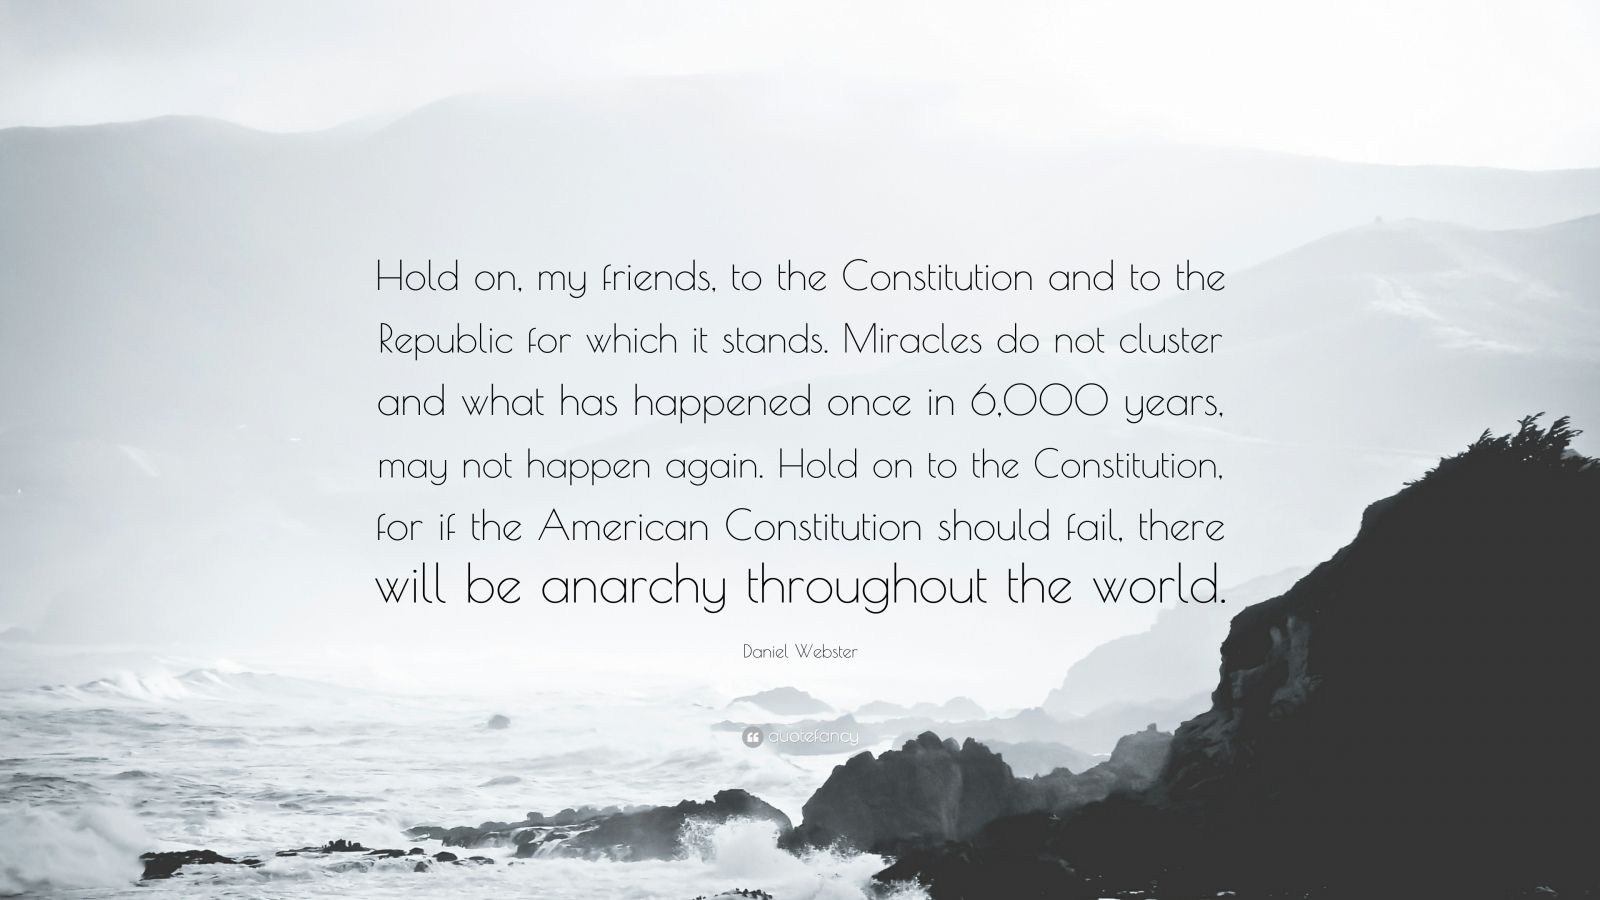 """Daniel Webster Quote: """"Hold on, my friends, to the Constitution and to the Republic for which it stands. Miracles do not cluster and what has happened once in 6,000 years, may not happen again. Hold on to the Constitution, for if the American Constitution should fail, there will be anarchy throughout the world."""""""